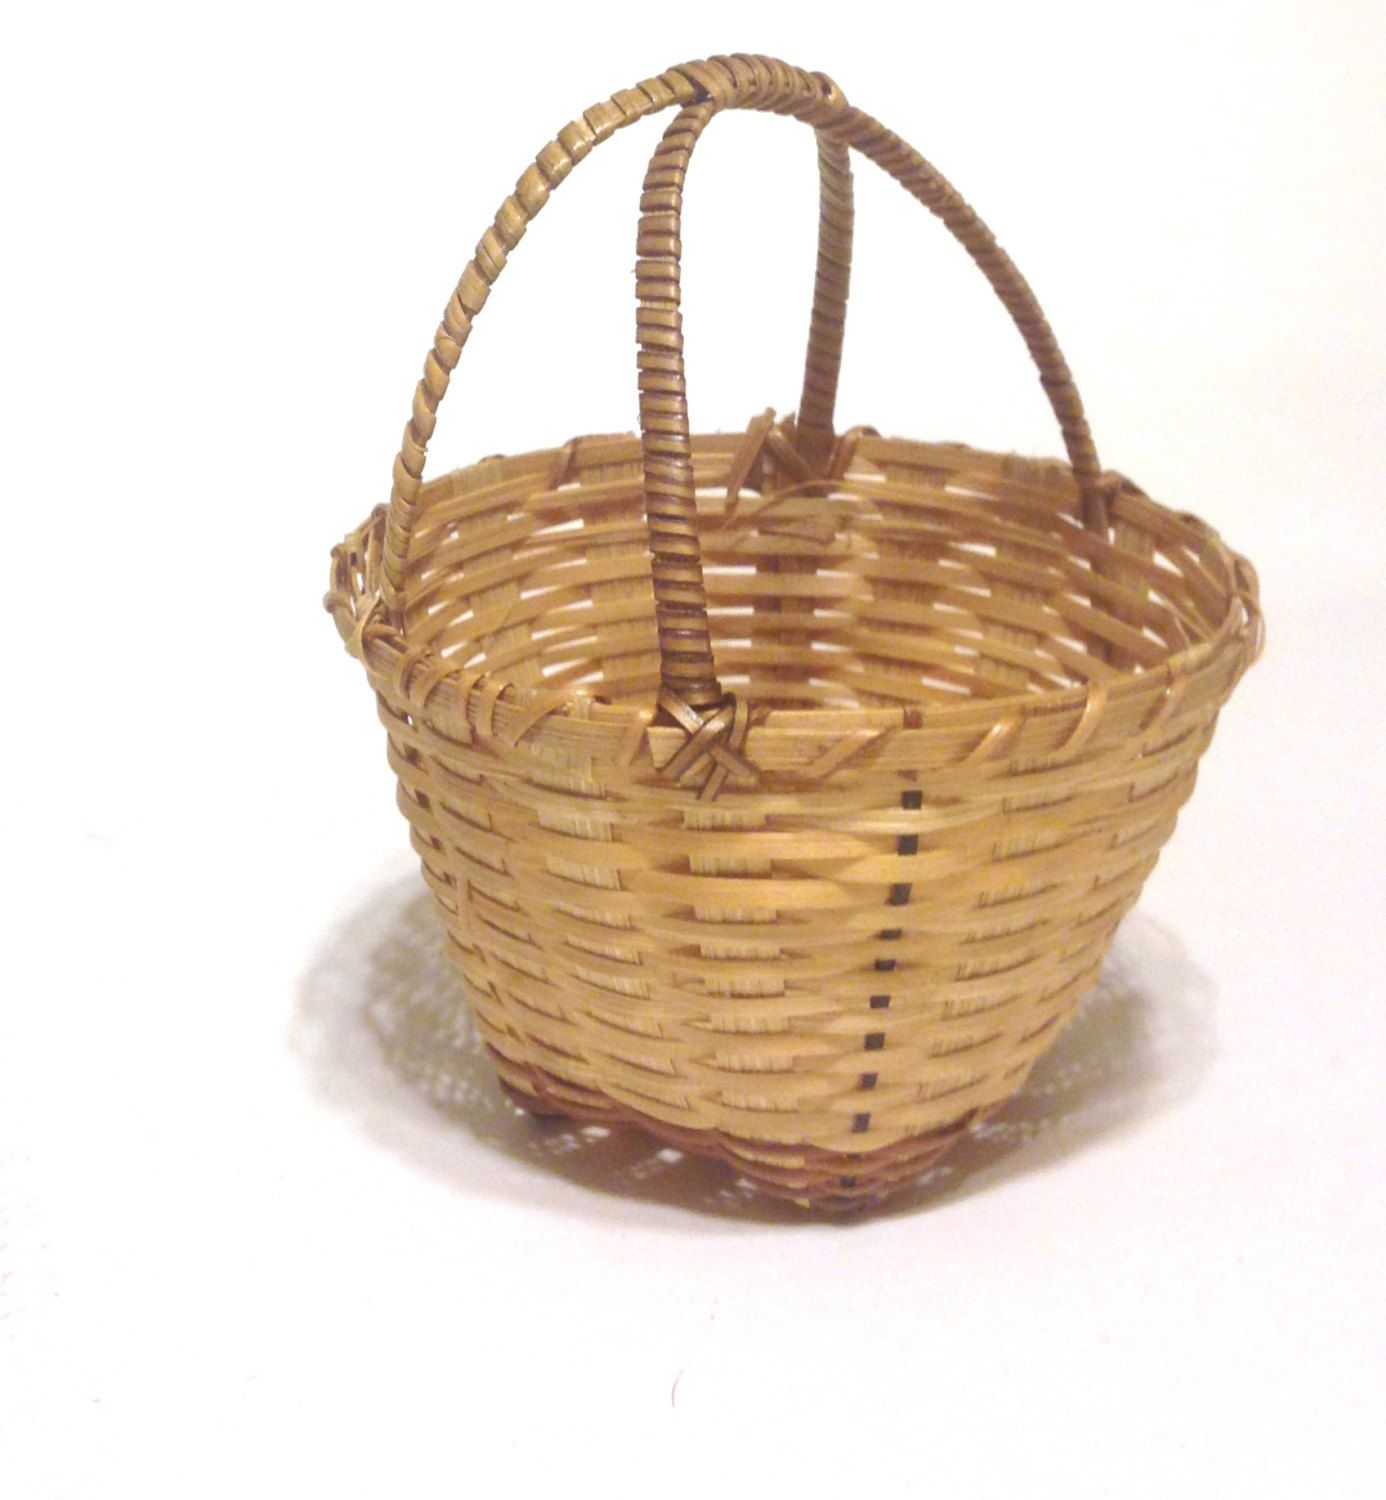 Basket sale 25 off miniature double handle small round wicker basket sale 25 off miniature double handle small round wicker basket yesteryears cute easter basket country cottage chic wicker cute gift ideascute negle Images